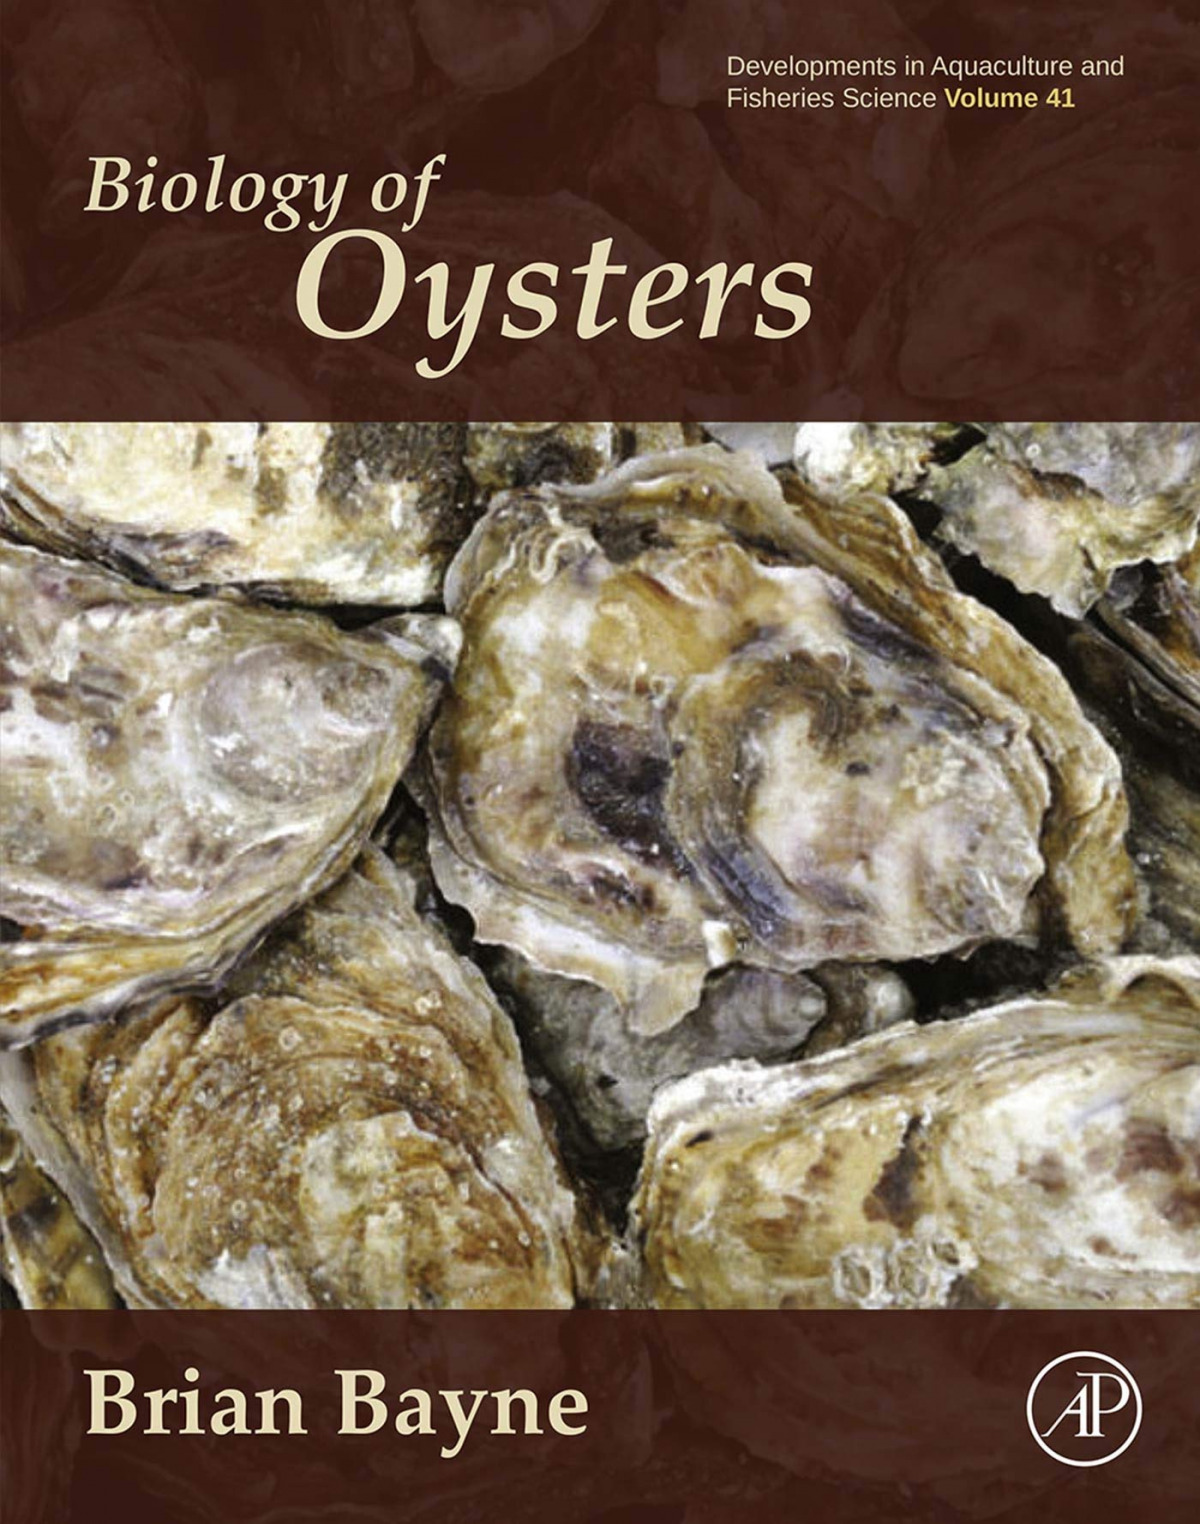 BIOLOGY OF OYSTERS VOL.41